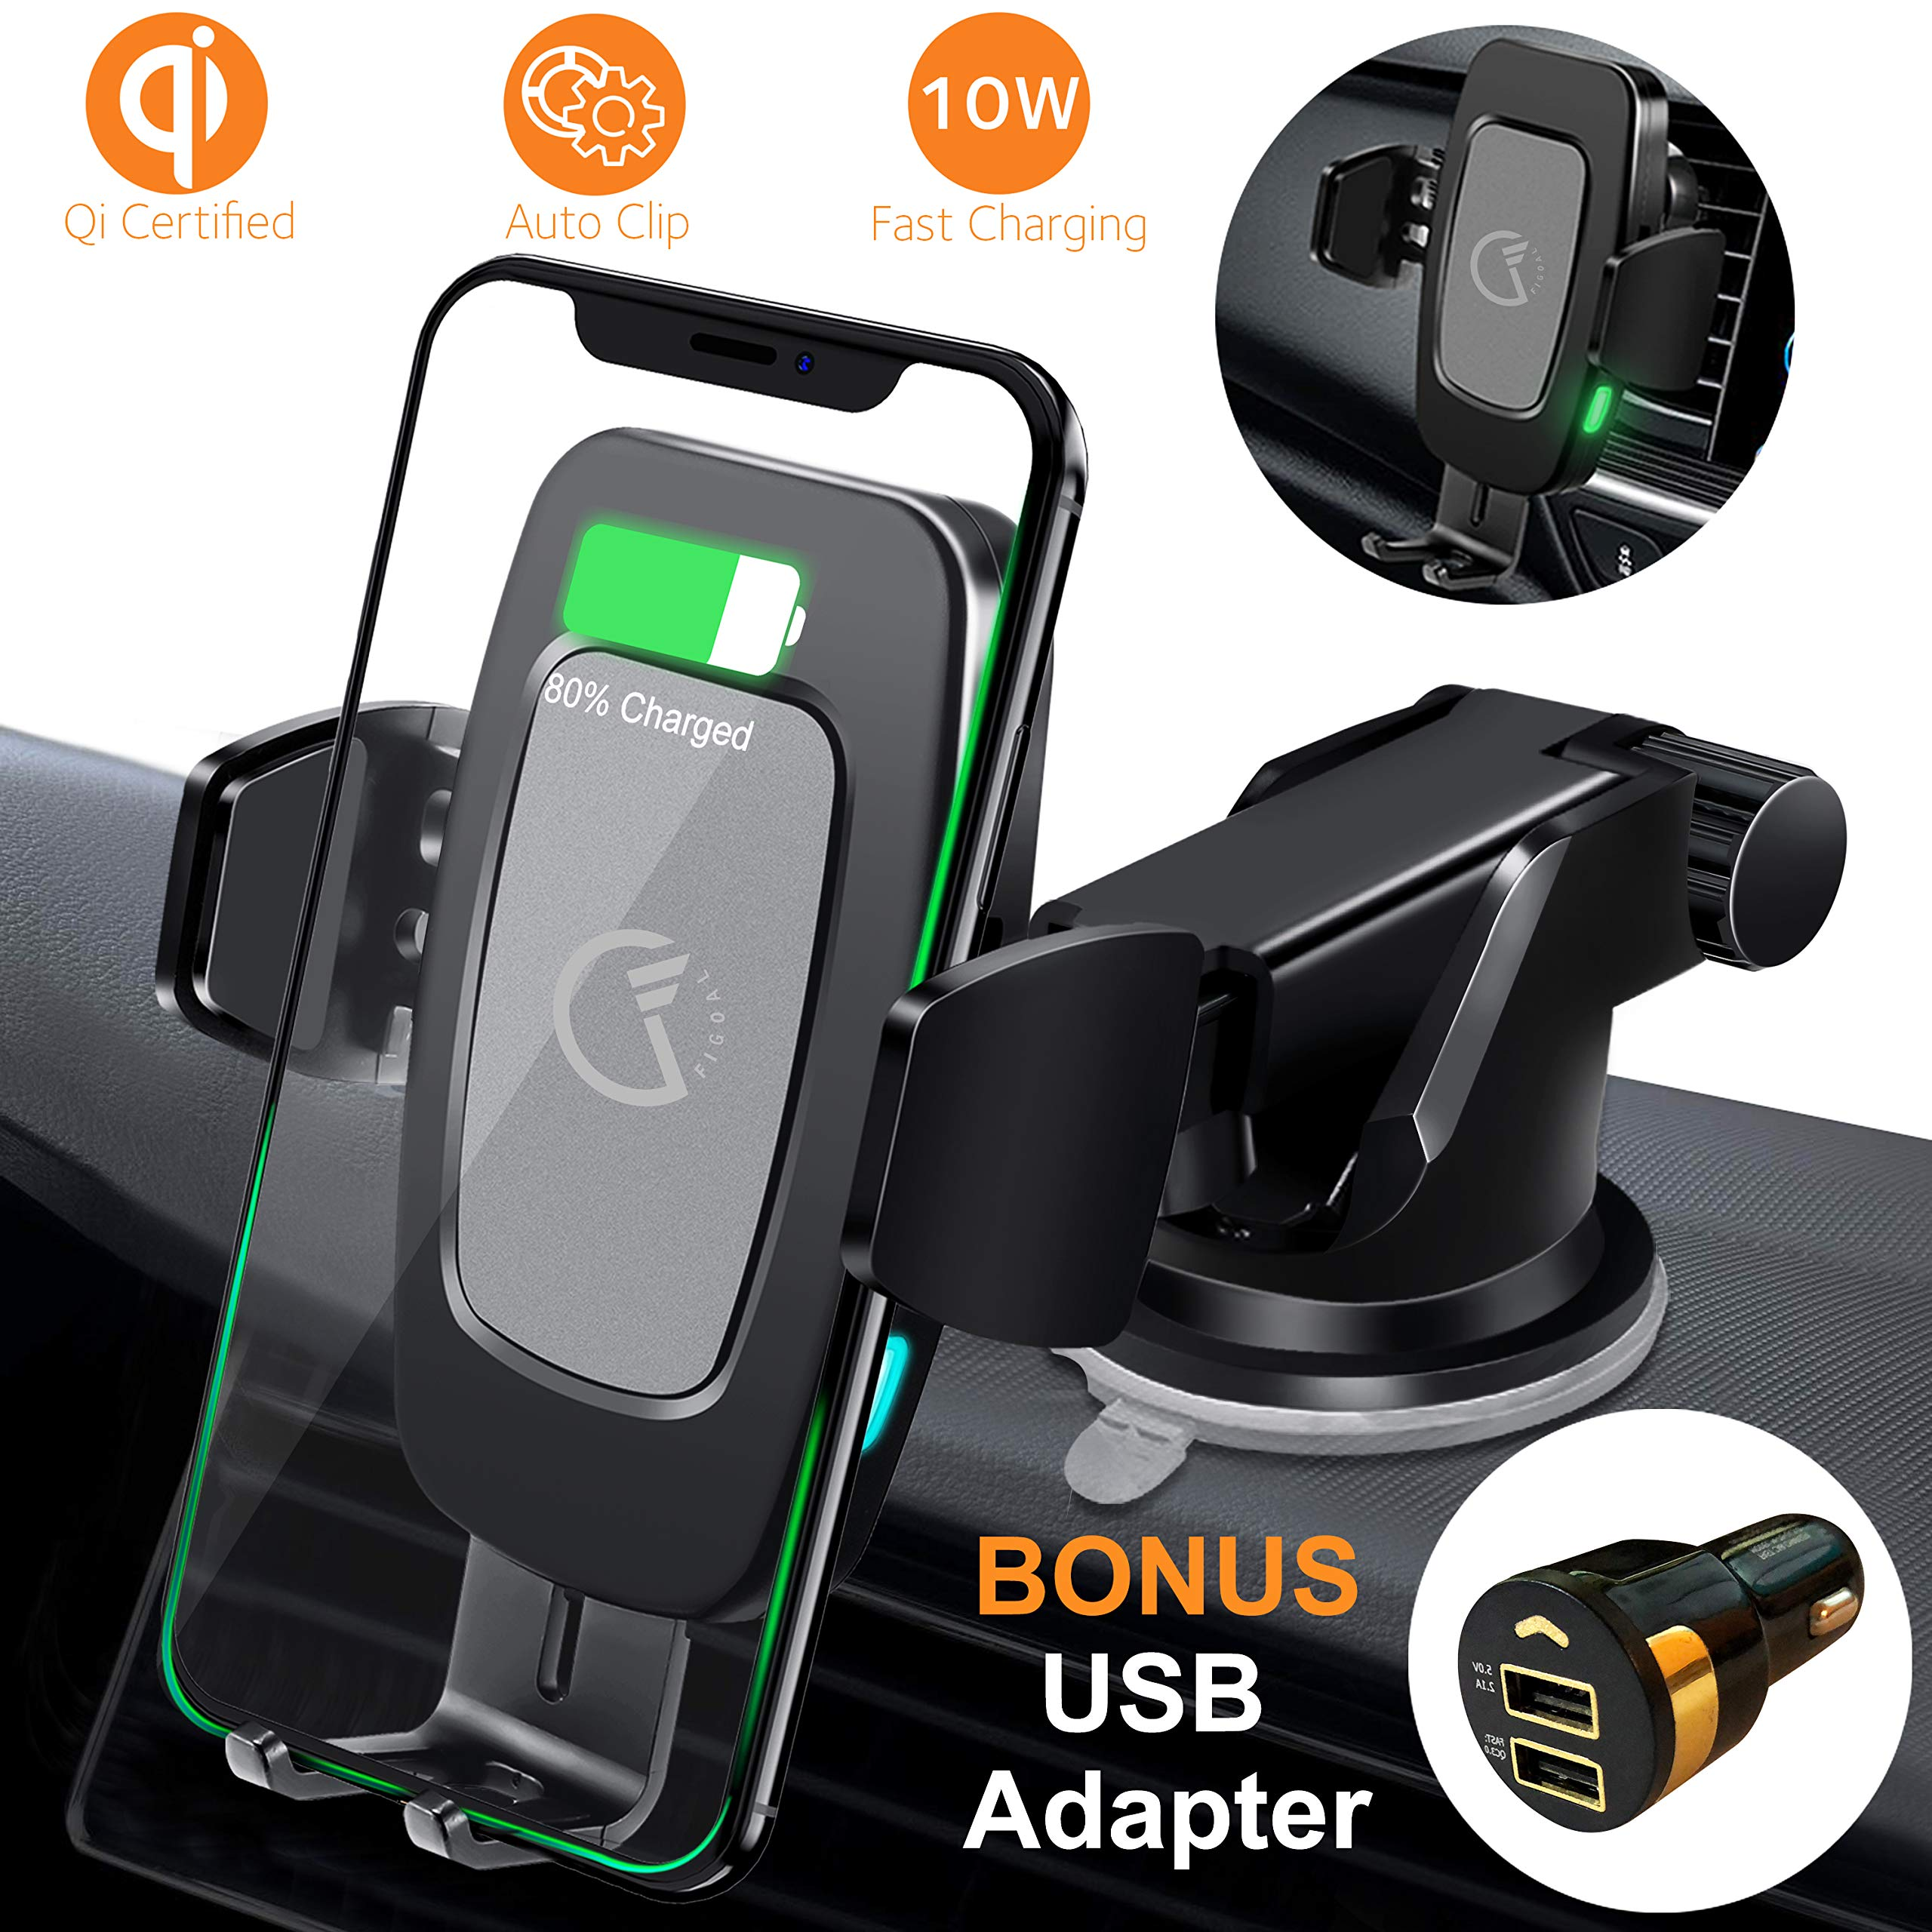 FiGoal Qi Wireless Car Charger Mount Bonus QC 3.0 USB Adapter Auto Clamping 10W 7.5W Fast Charging Air Vent Windshield Dashboard Phone Holder Compatible with iPhone X Xs Max XR 8 Android S8 S9 S10 by FiGoal